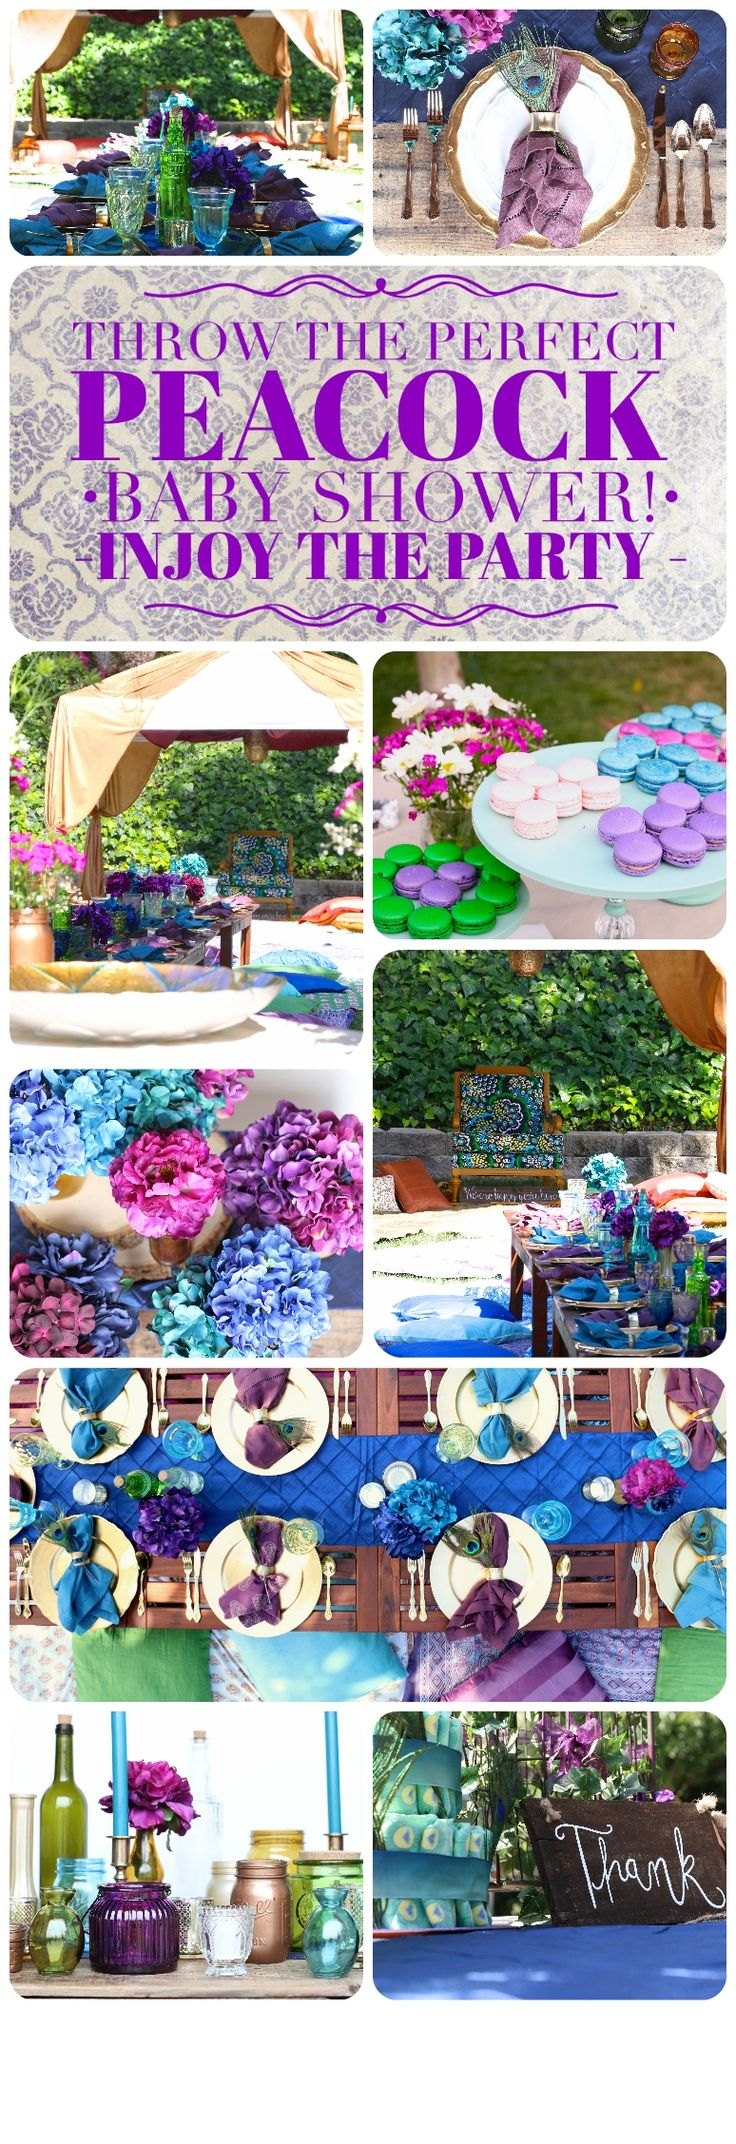 Everything you need to throw the perfect Peacock Baby Shower or Bridal Shower! This entire collection can be yours to rent! Low tables, pillows, blankets, place settings, jewel tones, royal purple, blue, and green decor... & flowers included!  Feeling like a Goddess with @inJOYtheParty!